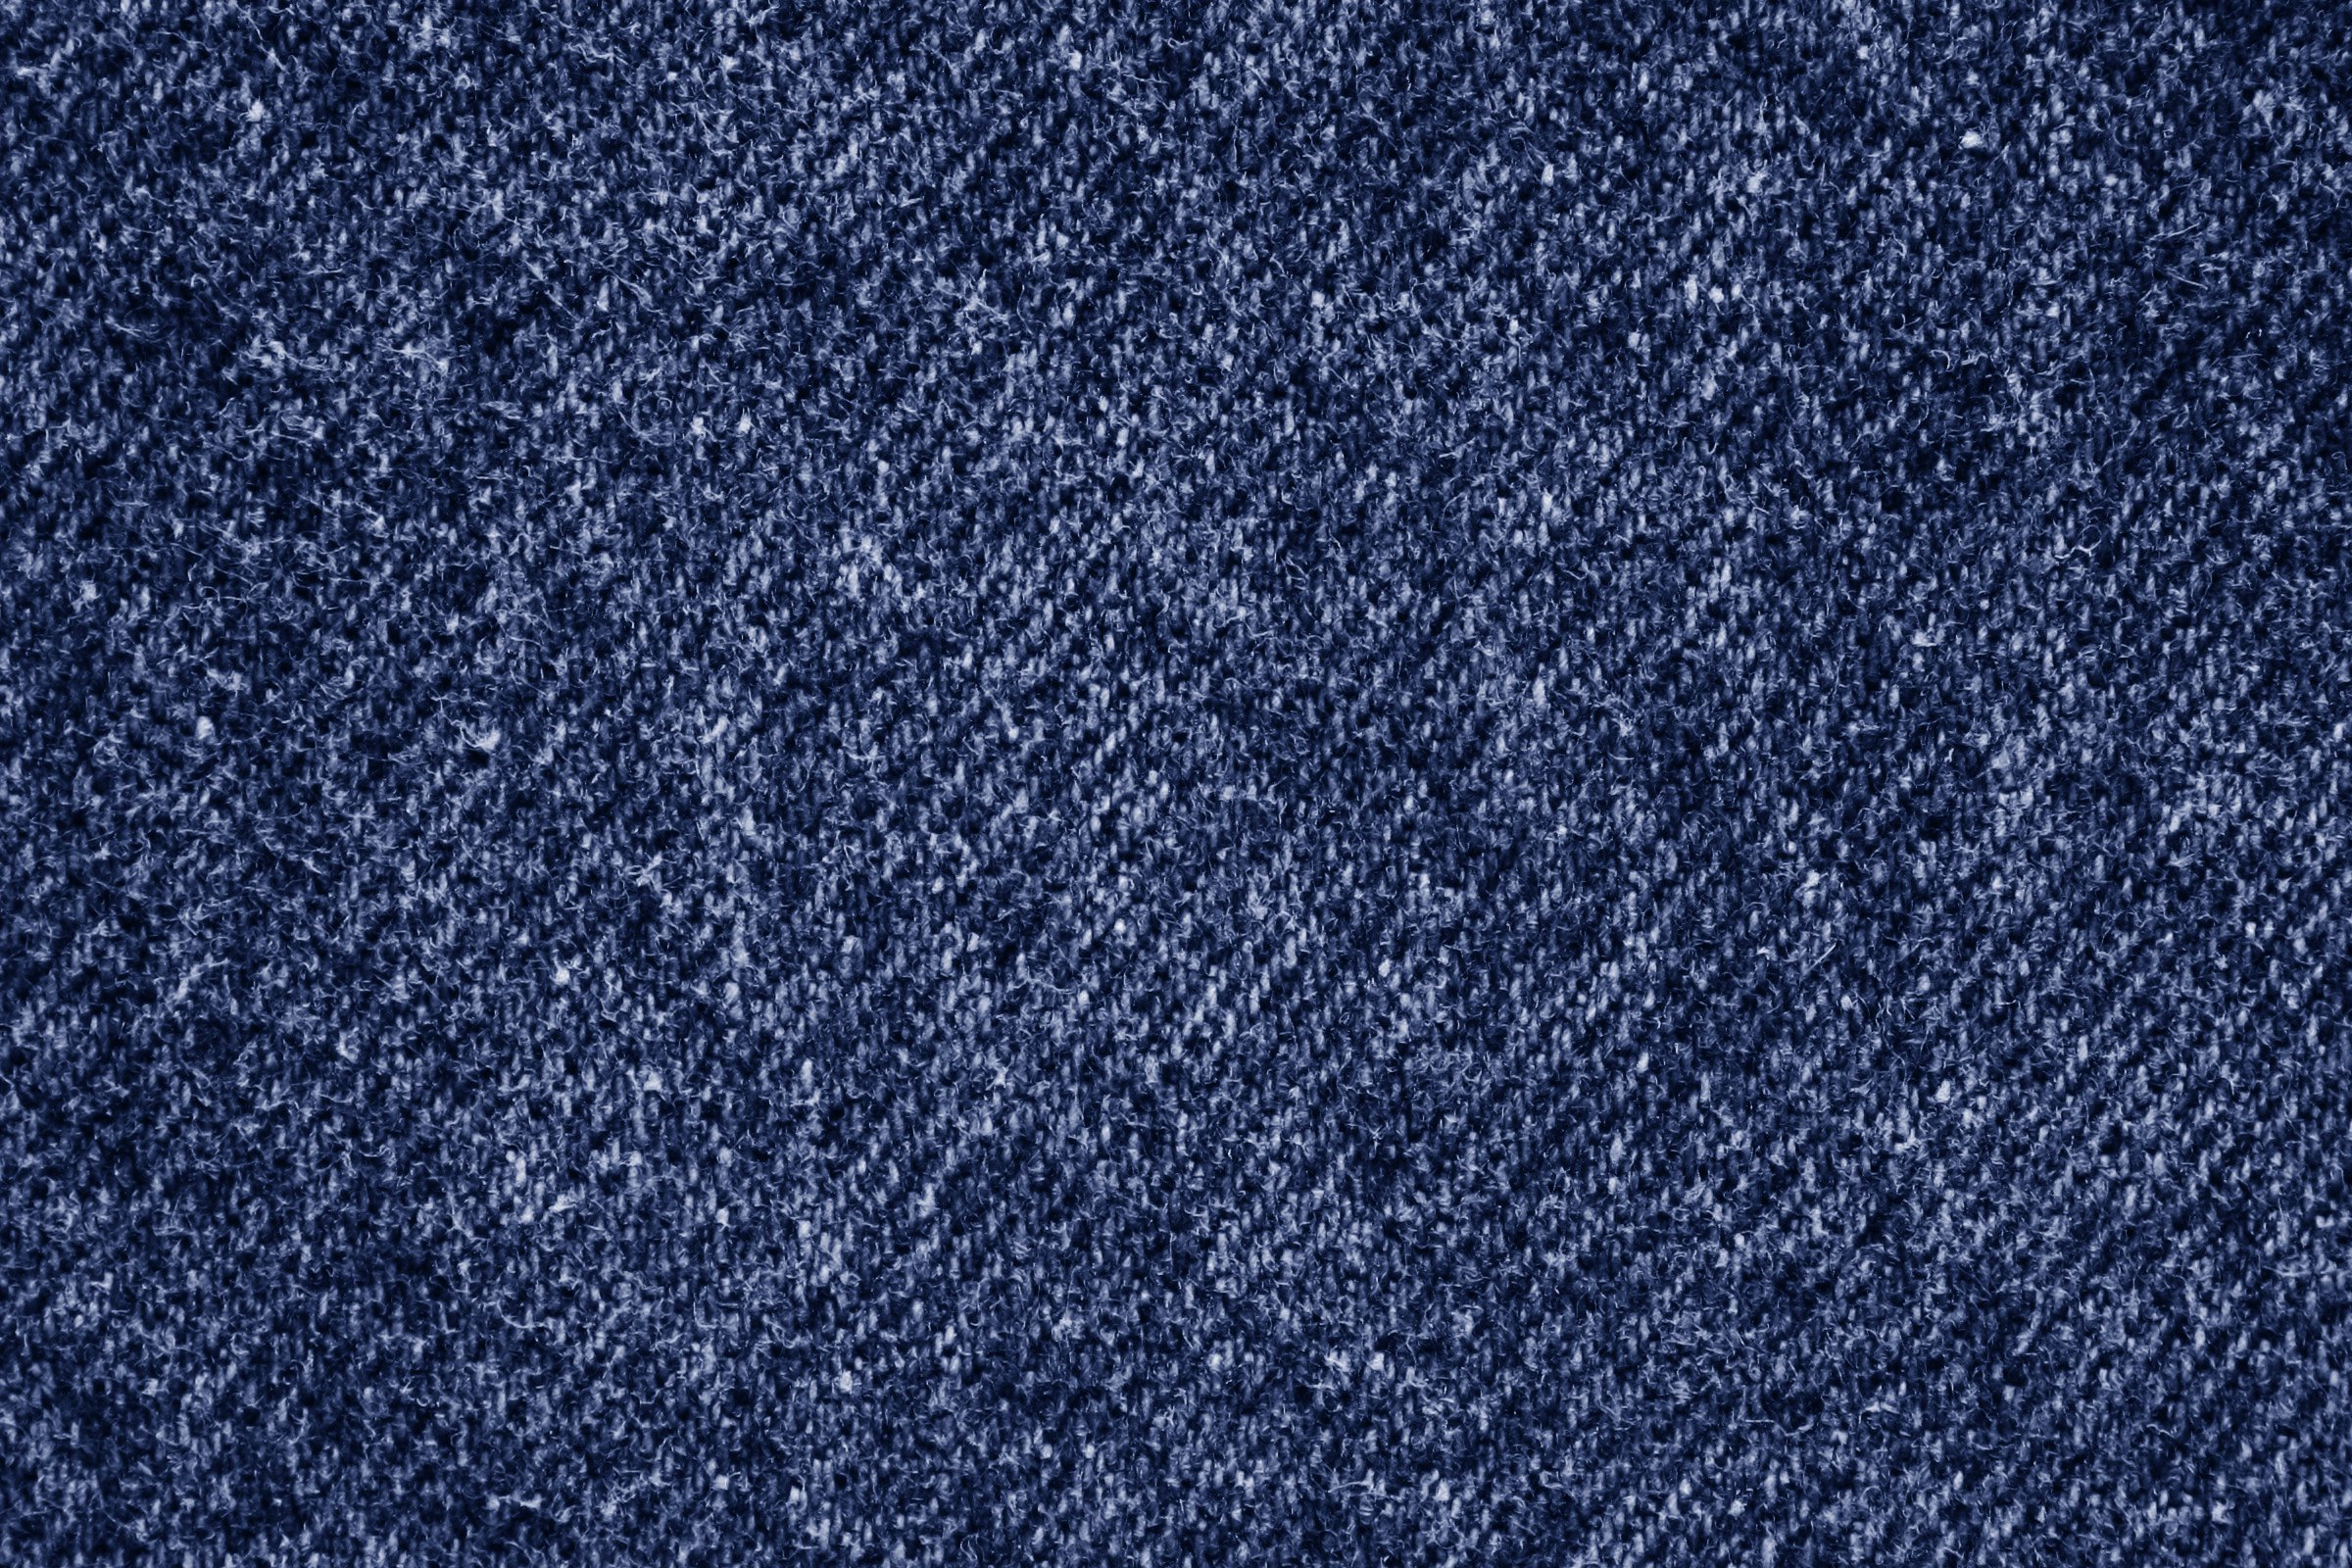 Dark Blue Denim Fabric Texture